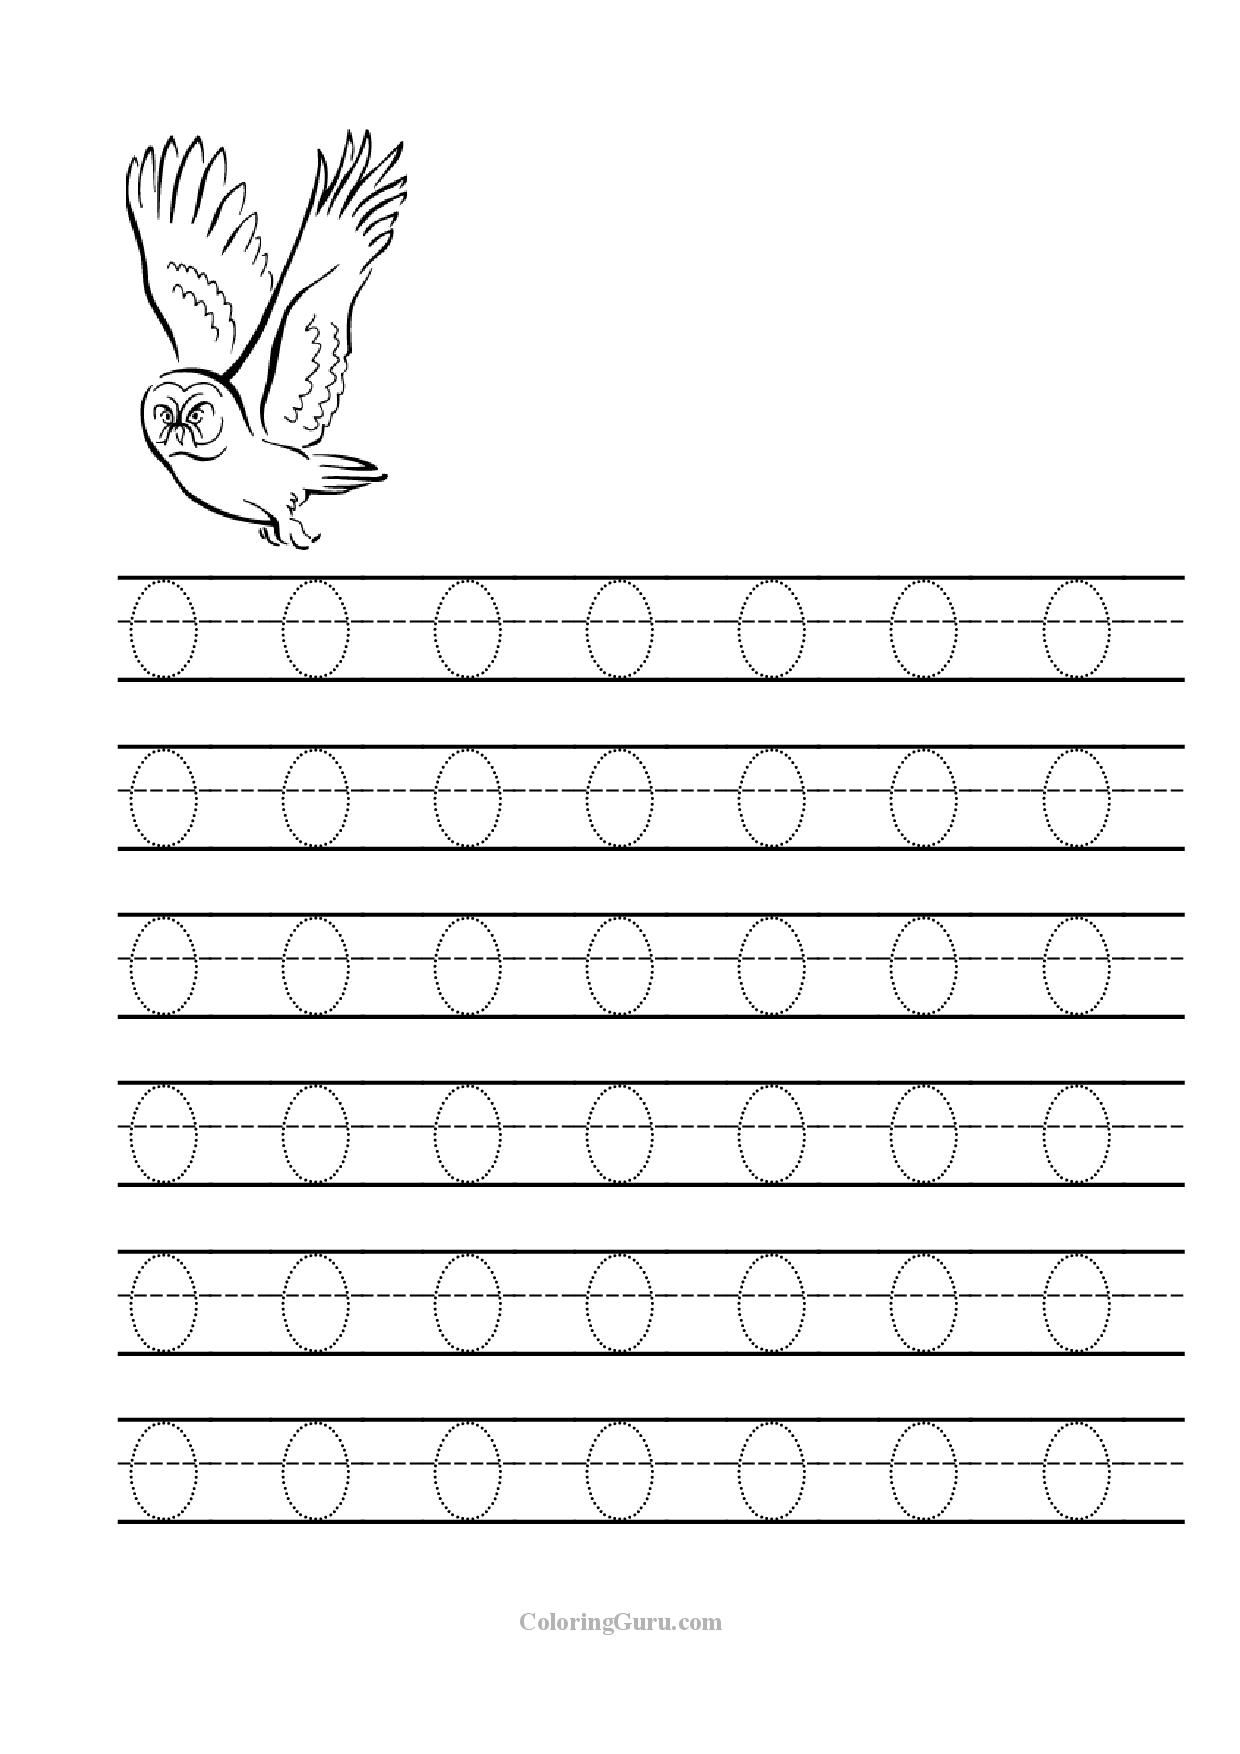 Tracing_Letter_O_Worksheets_For_Preschool 1,240×1,754 with Letter O Tracing Sheet